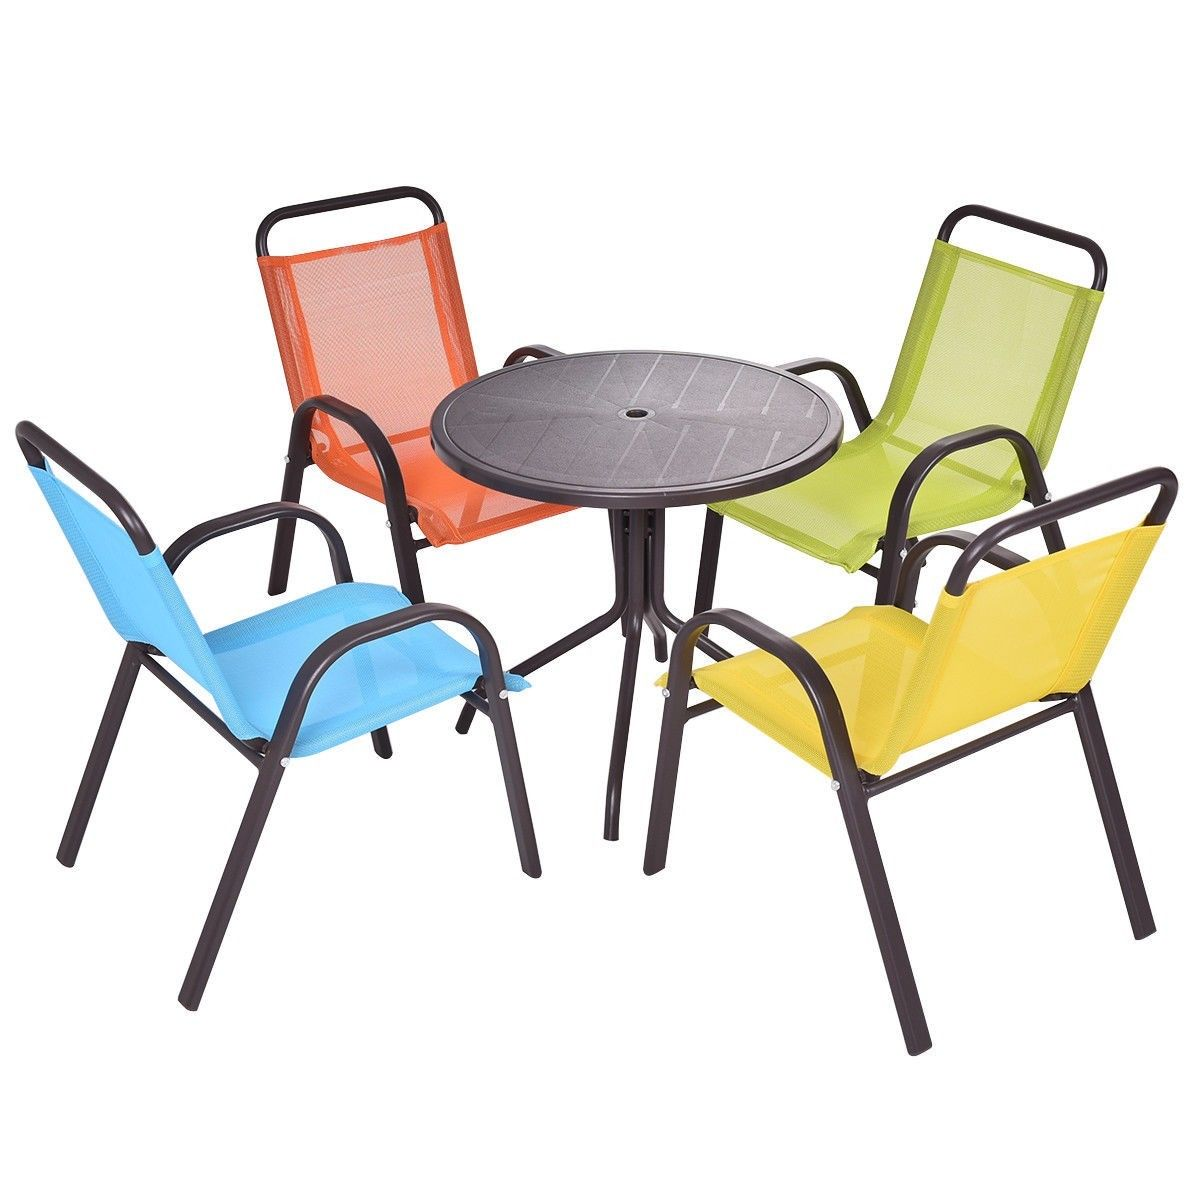 GHP Fiber PP Steel Indoor Outdoor Kids Table With 4 Pcs Colorful Stackable  Chairs   Walmart.com